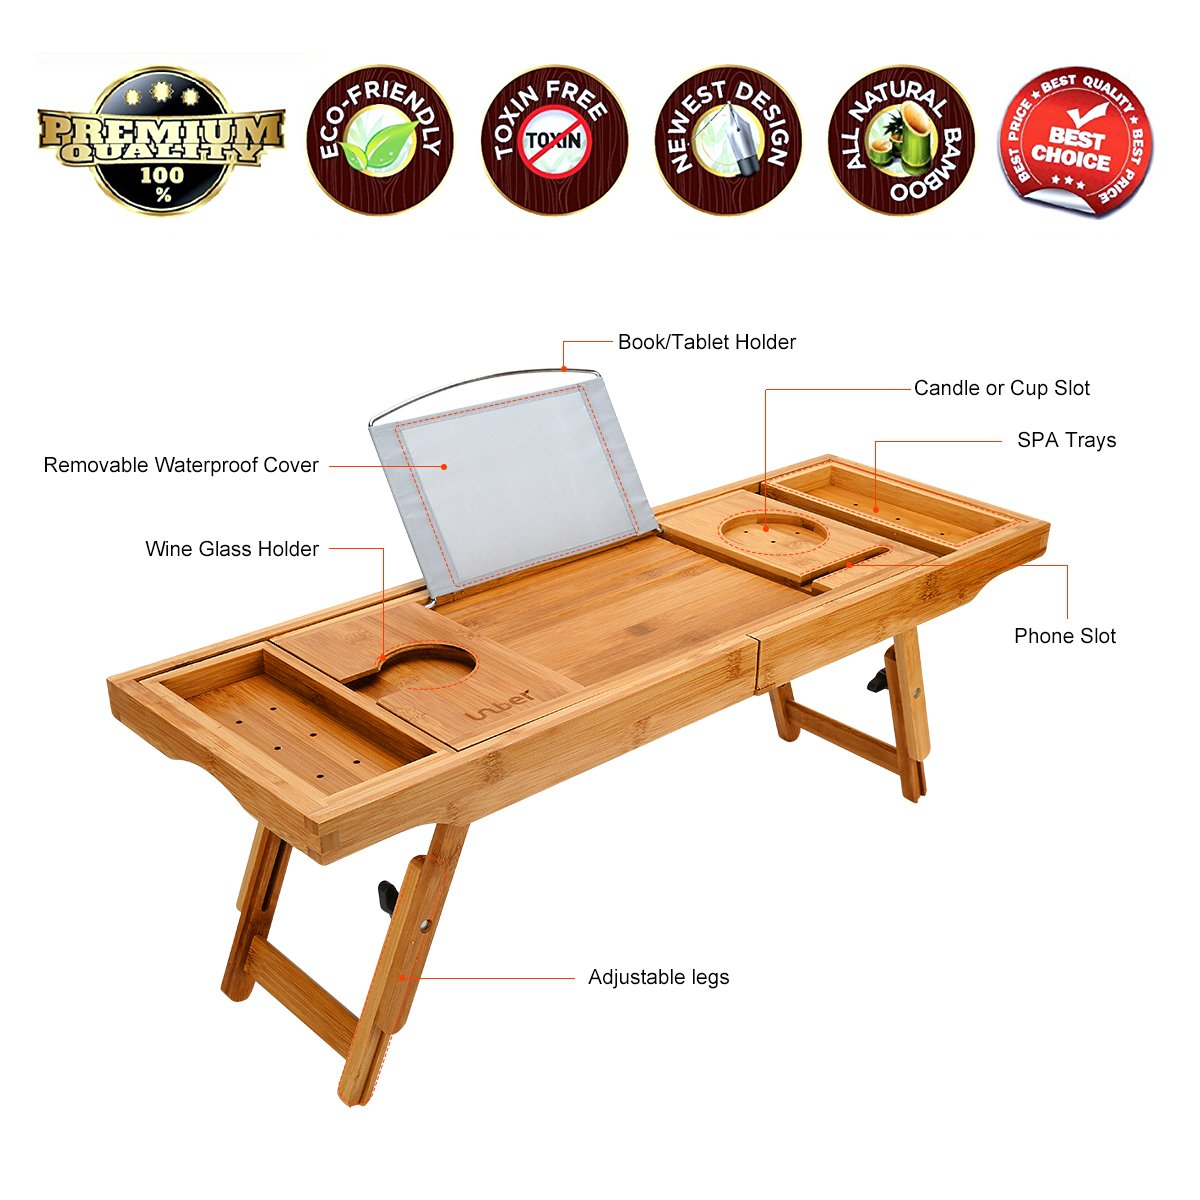 Wooden-Life Bathtub Caddy Tray& Laptop Desk with Foldable Legs, 2 in 1 Wisdom Design - Luxurious Bathtub Caddy with Extending Sides, Tablet Holder, Reading Rack,Cellphone Tray and Wine Glass Holder by Wooden-Life (Image #3)